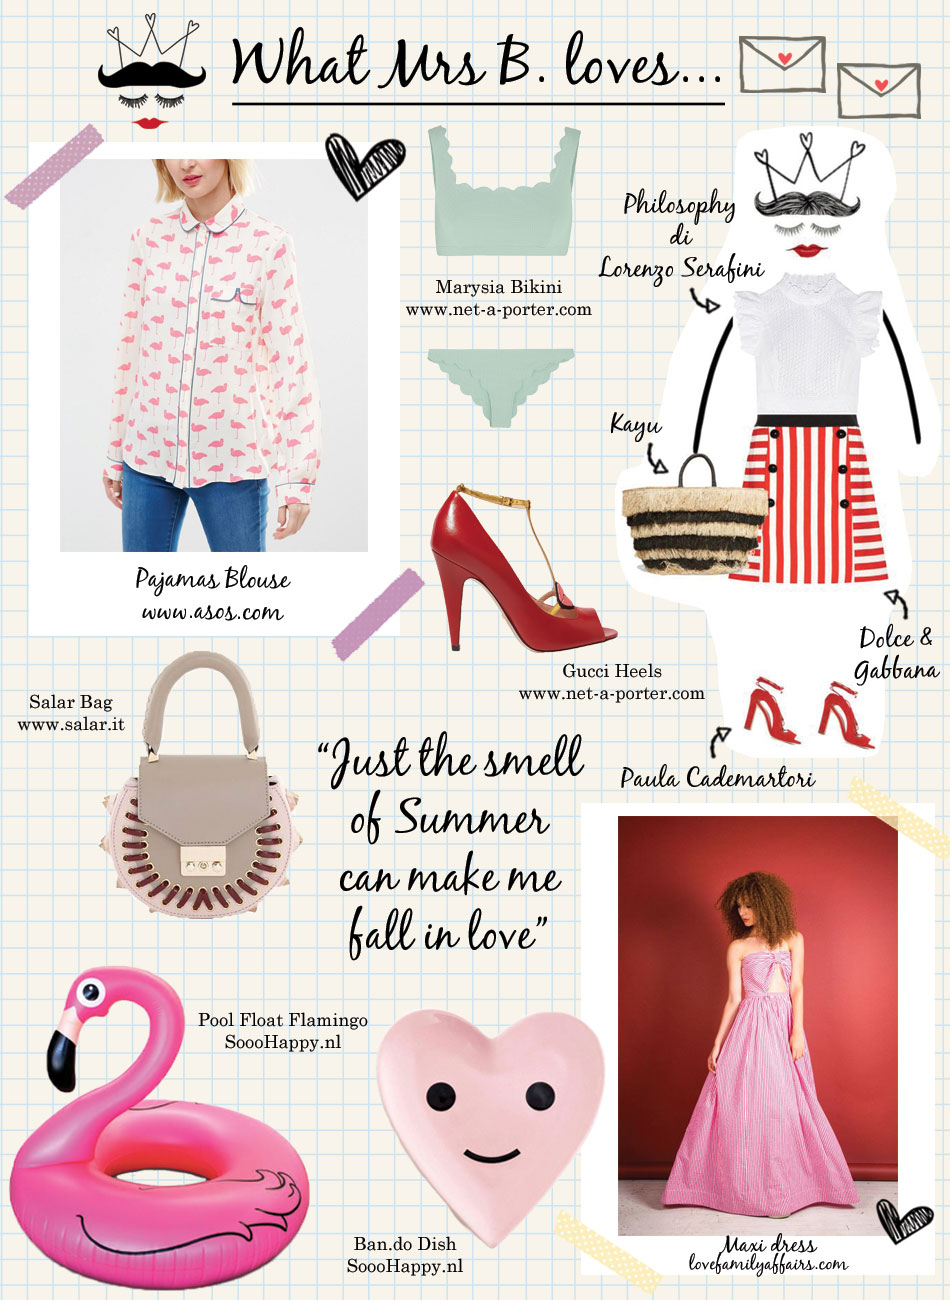 Mrs B's picks - The coolest things to buy in April. www.bonjourchiara.com